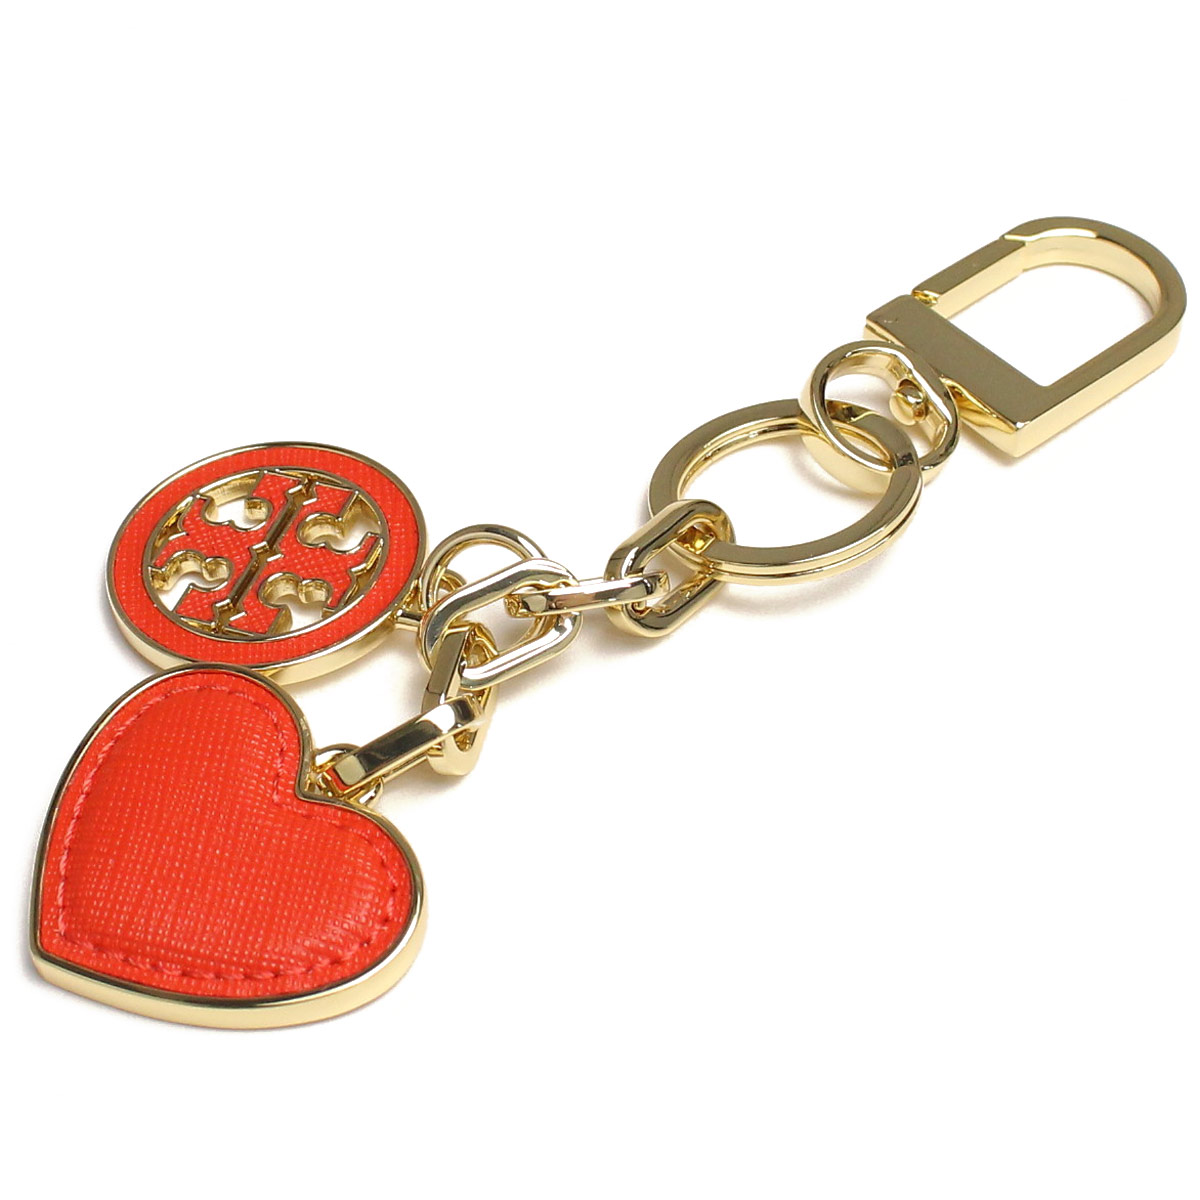 0d3e7eb204b5 Bighit The total brand wholesale  Tory Burch (TORY BURCH) LOGO AND HEART  KEY FOB key ring 11169312-605 Orange POPPY RED( taxfree send by  EMS authentic A ...